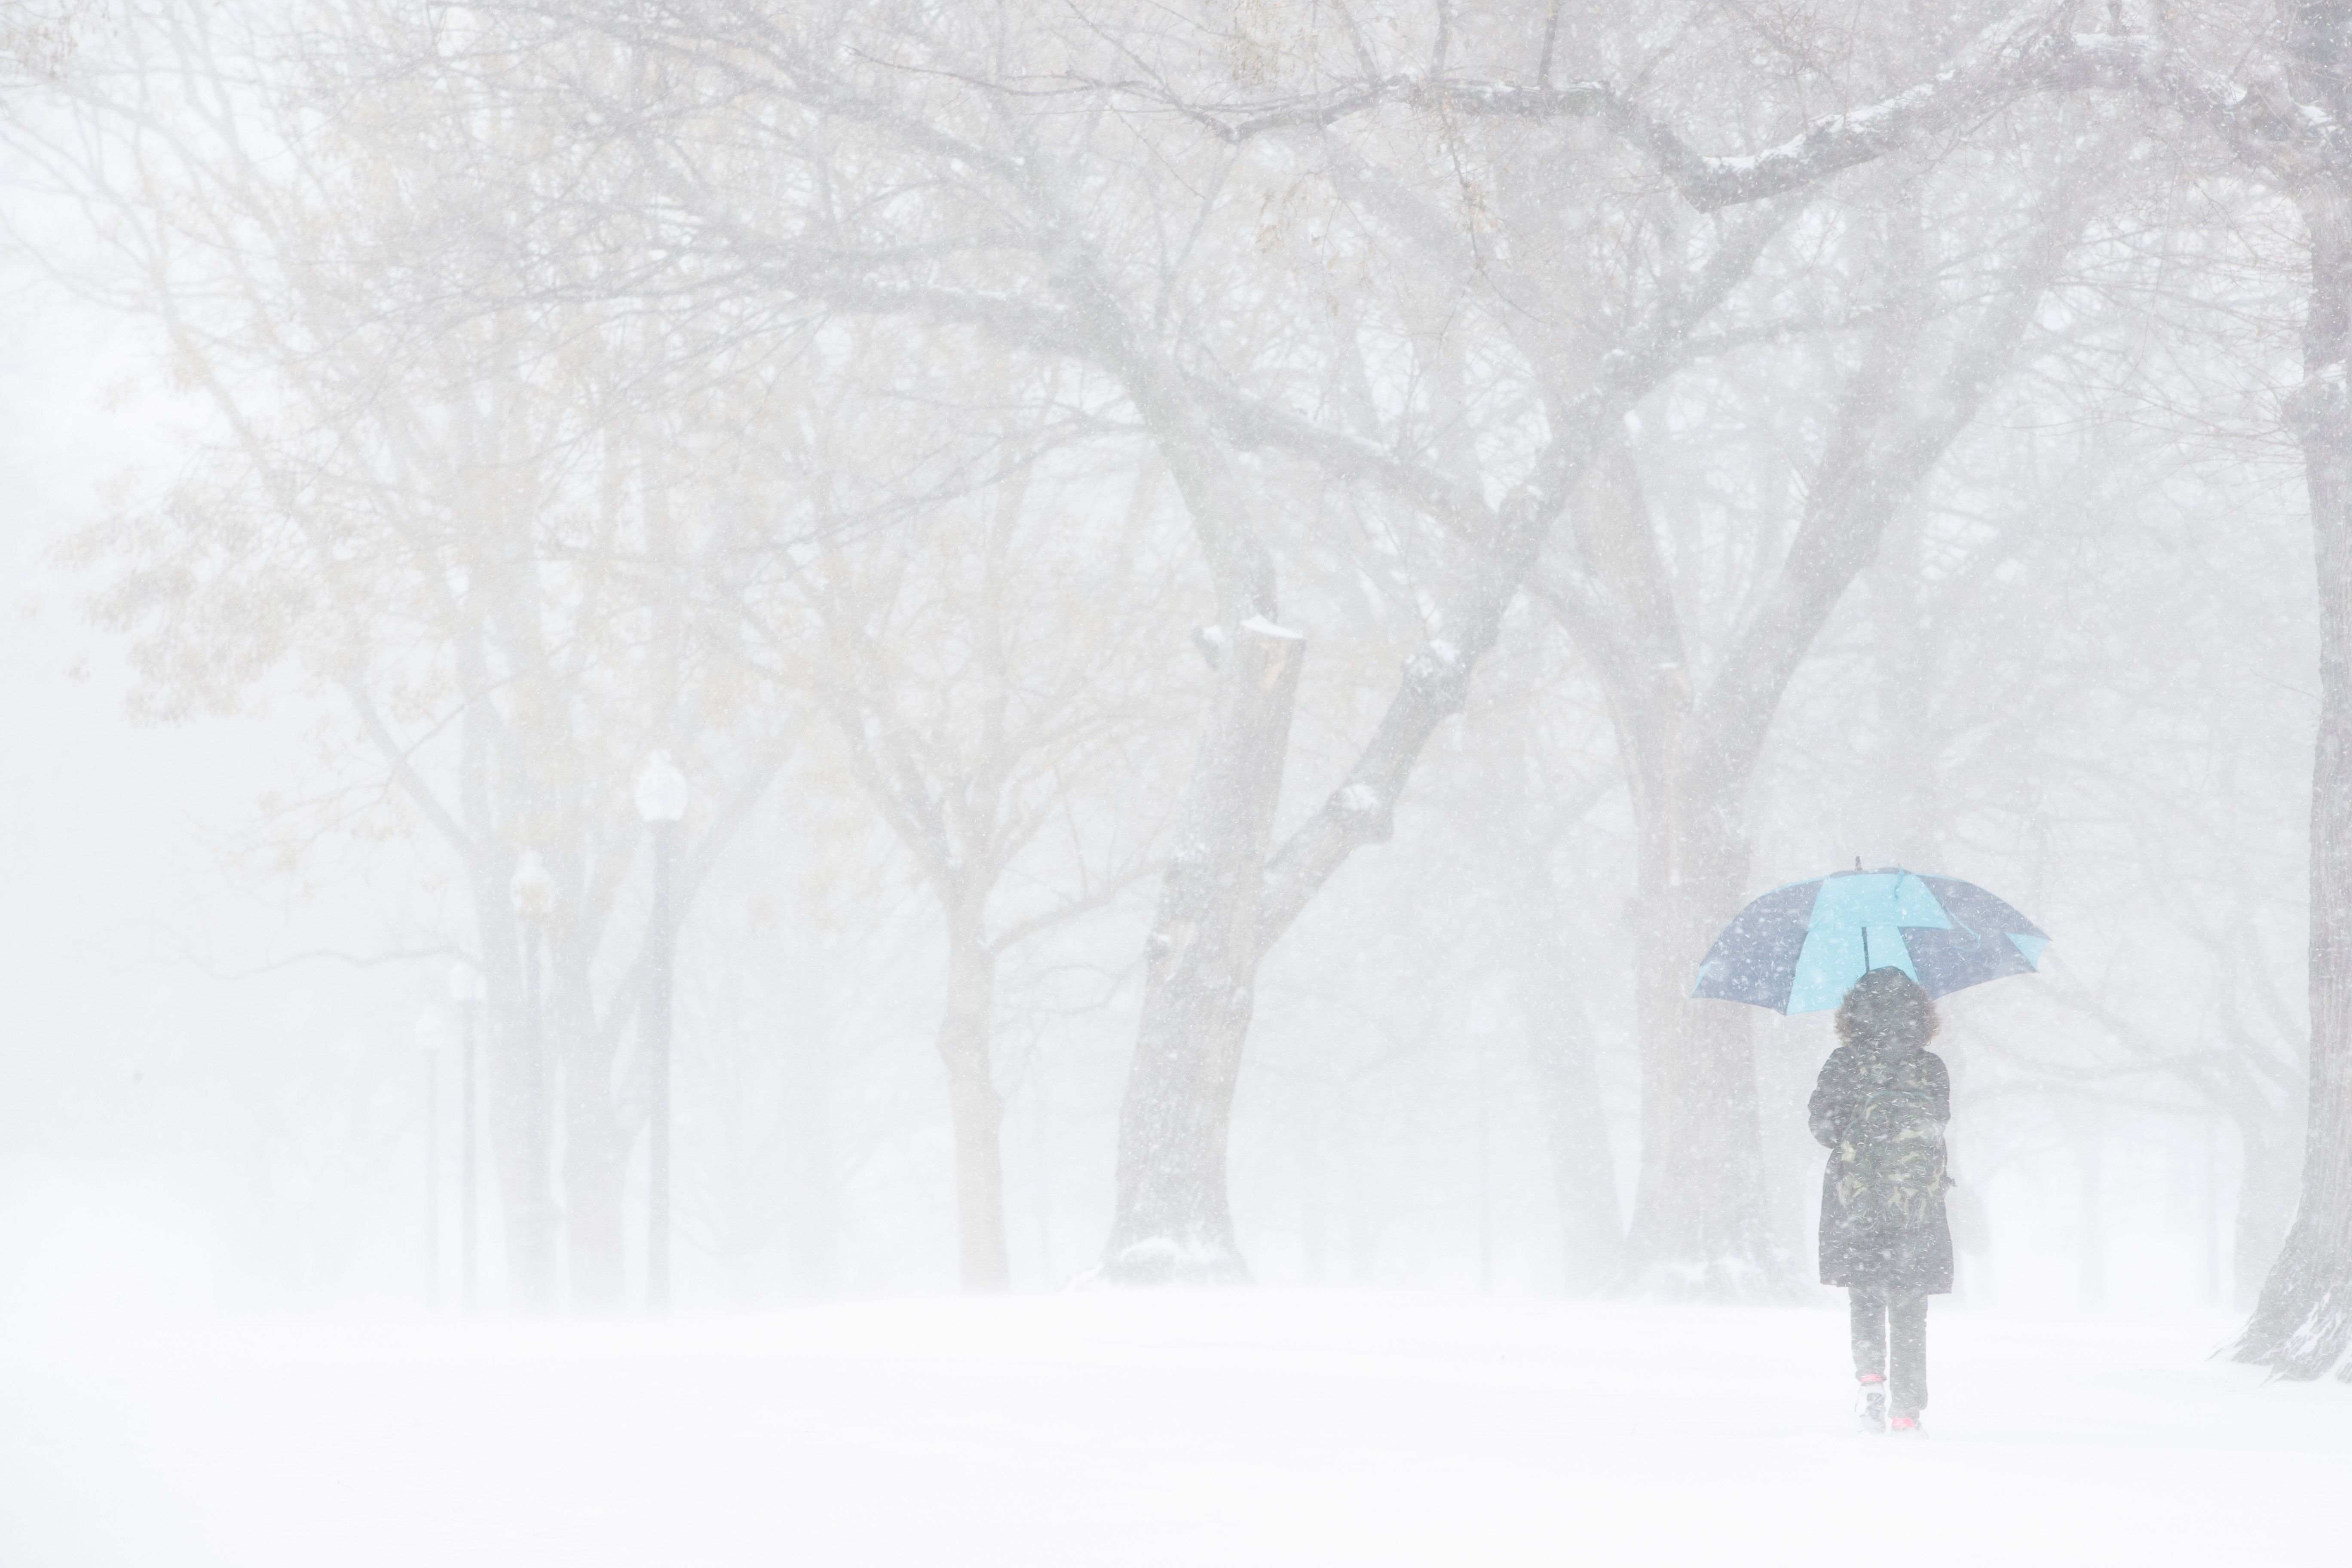 BOSTON, MA - DECEMBER 25: A Christmas Day snowstorm creates whiteout conditions at the Boston Common on Dec. 25, 2017. (Photo by Dina Rudick/The Boston Globe via Getty Images)